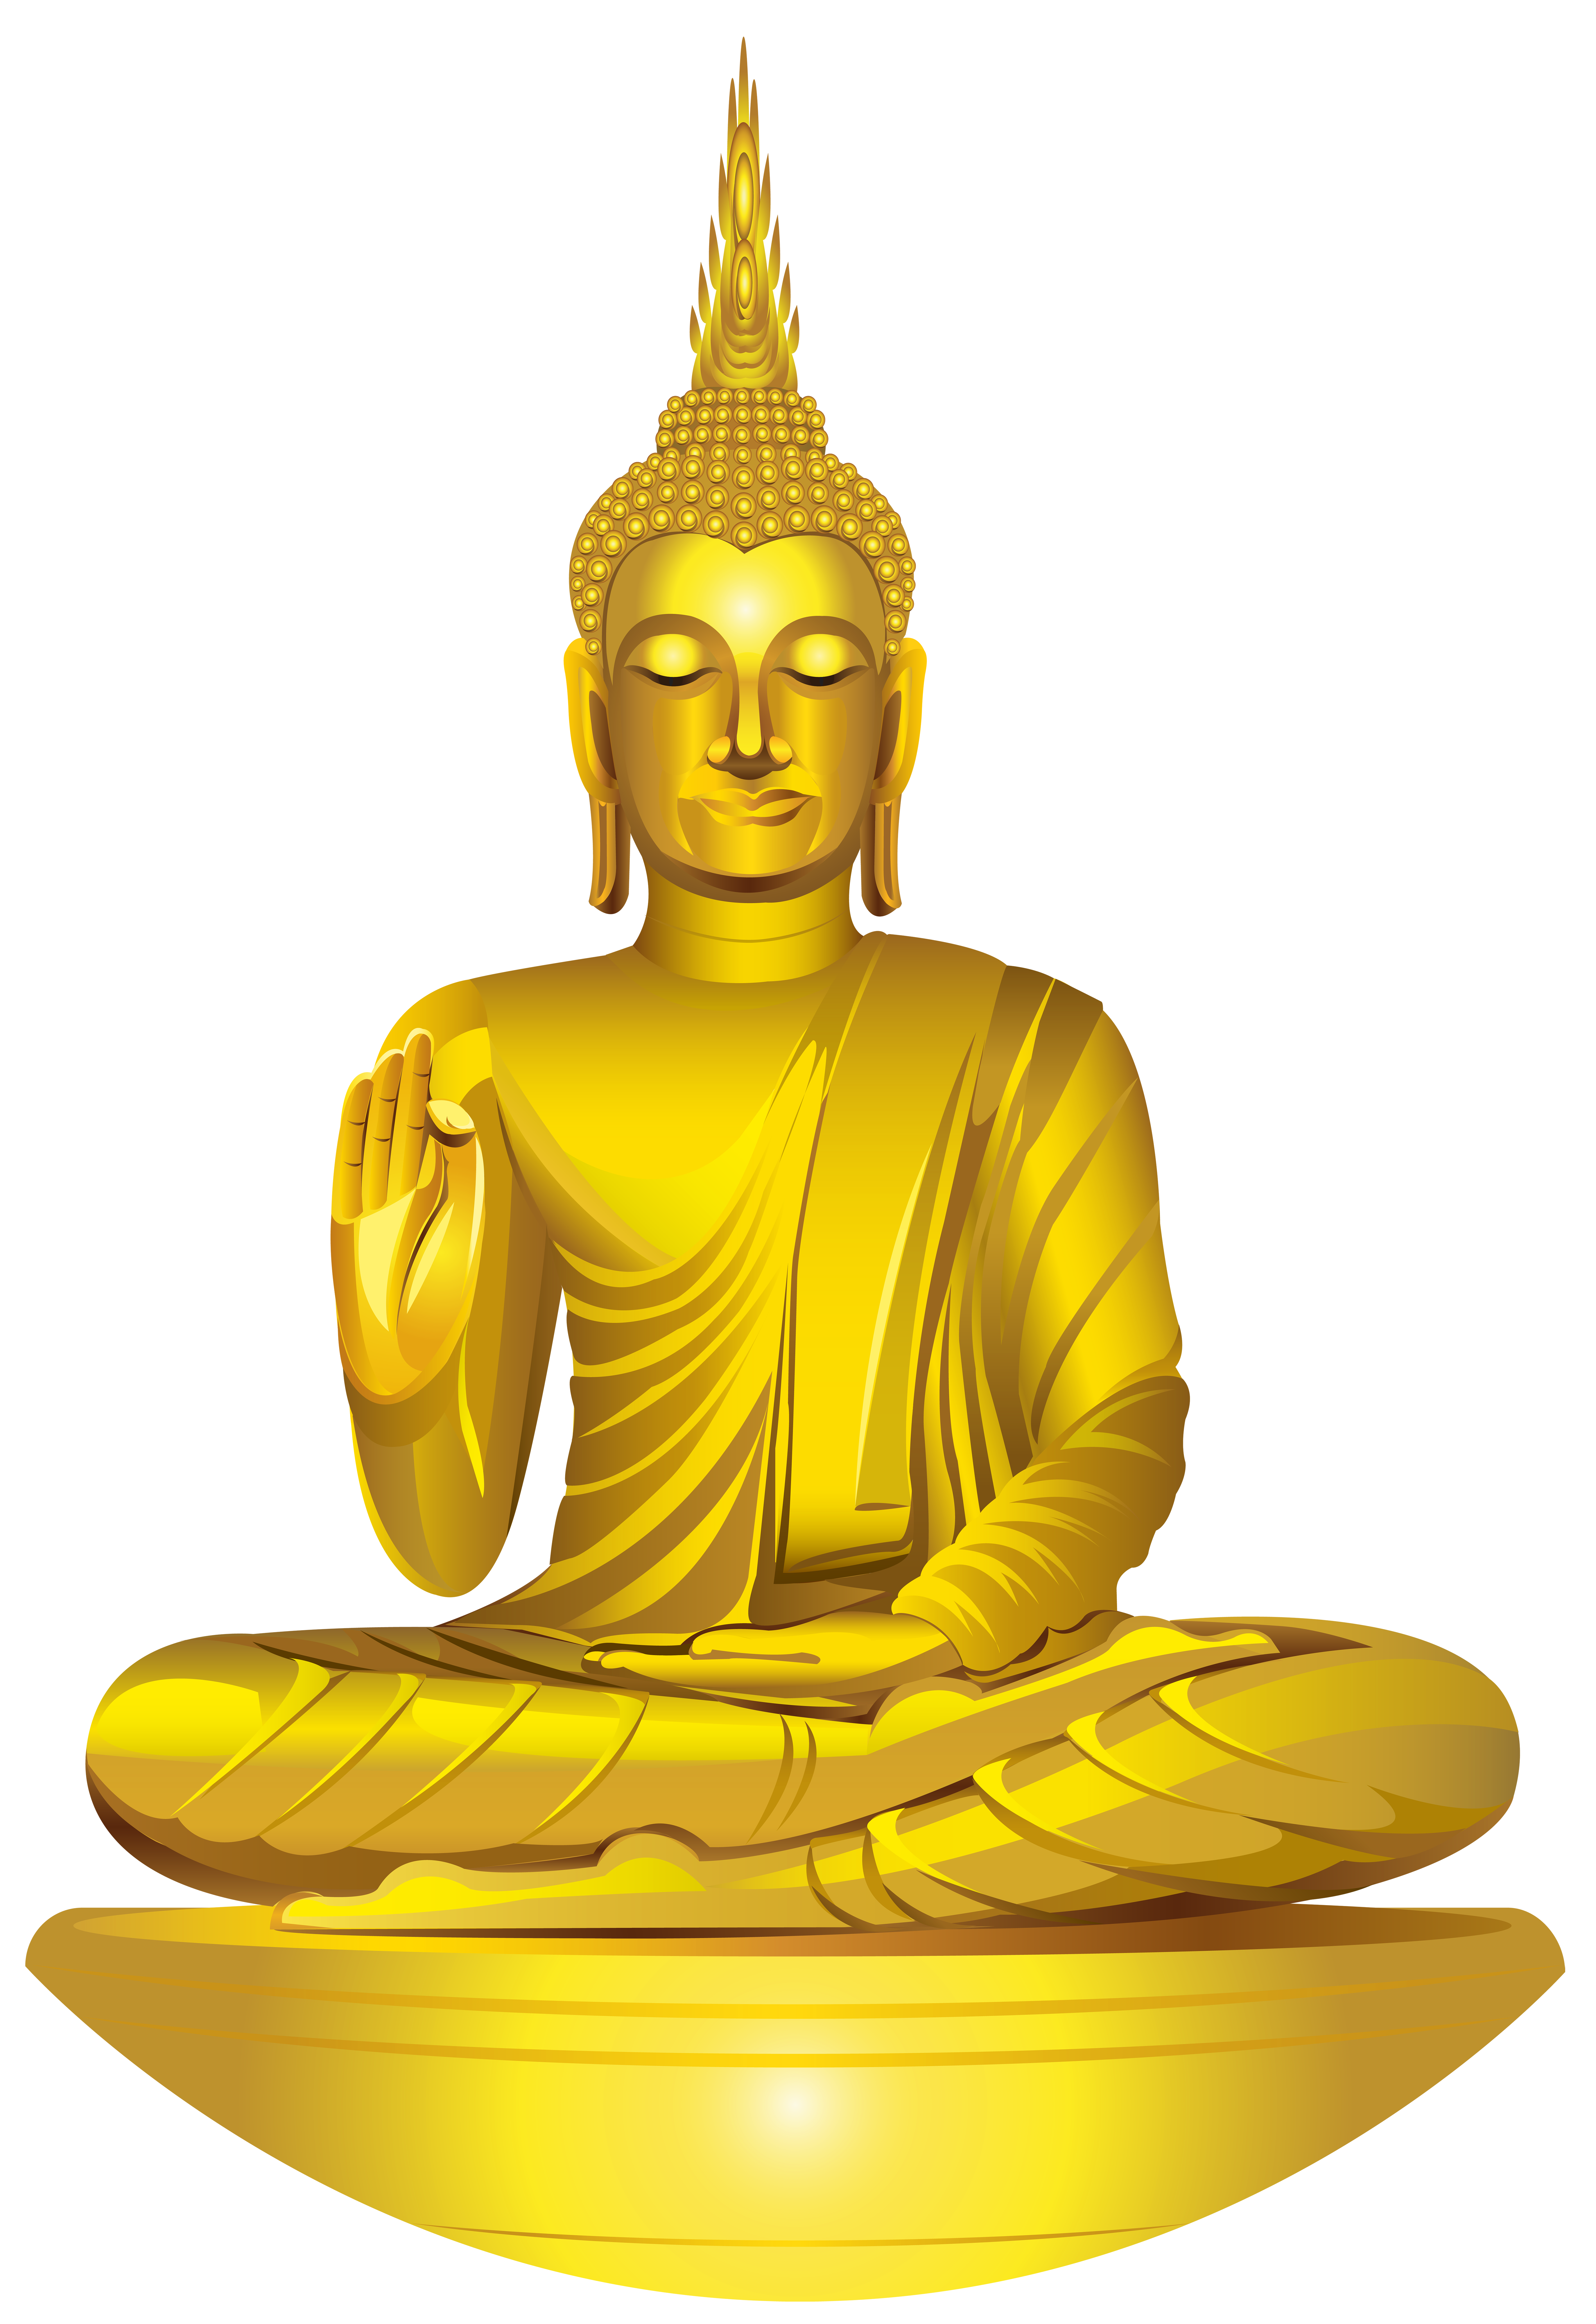 Statue png clip art. Buddha clipart golden buddha black and white download